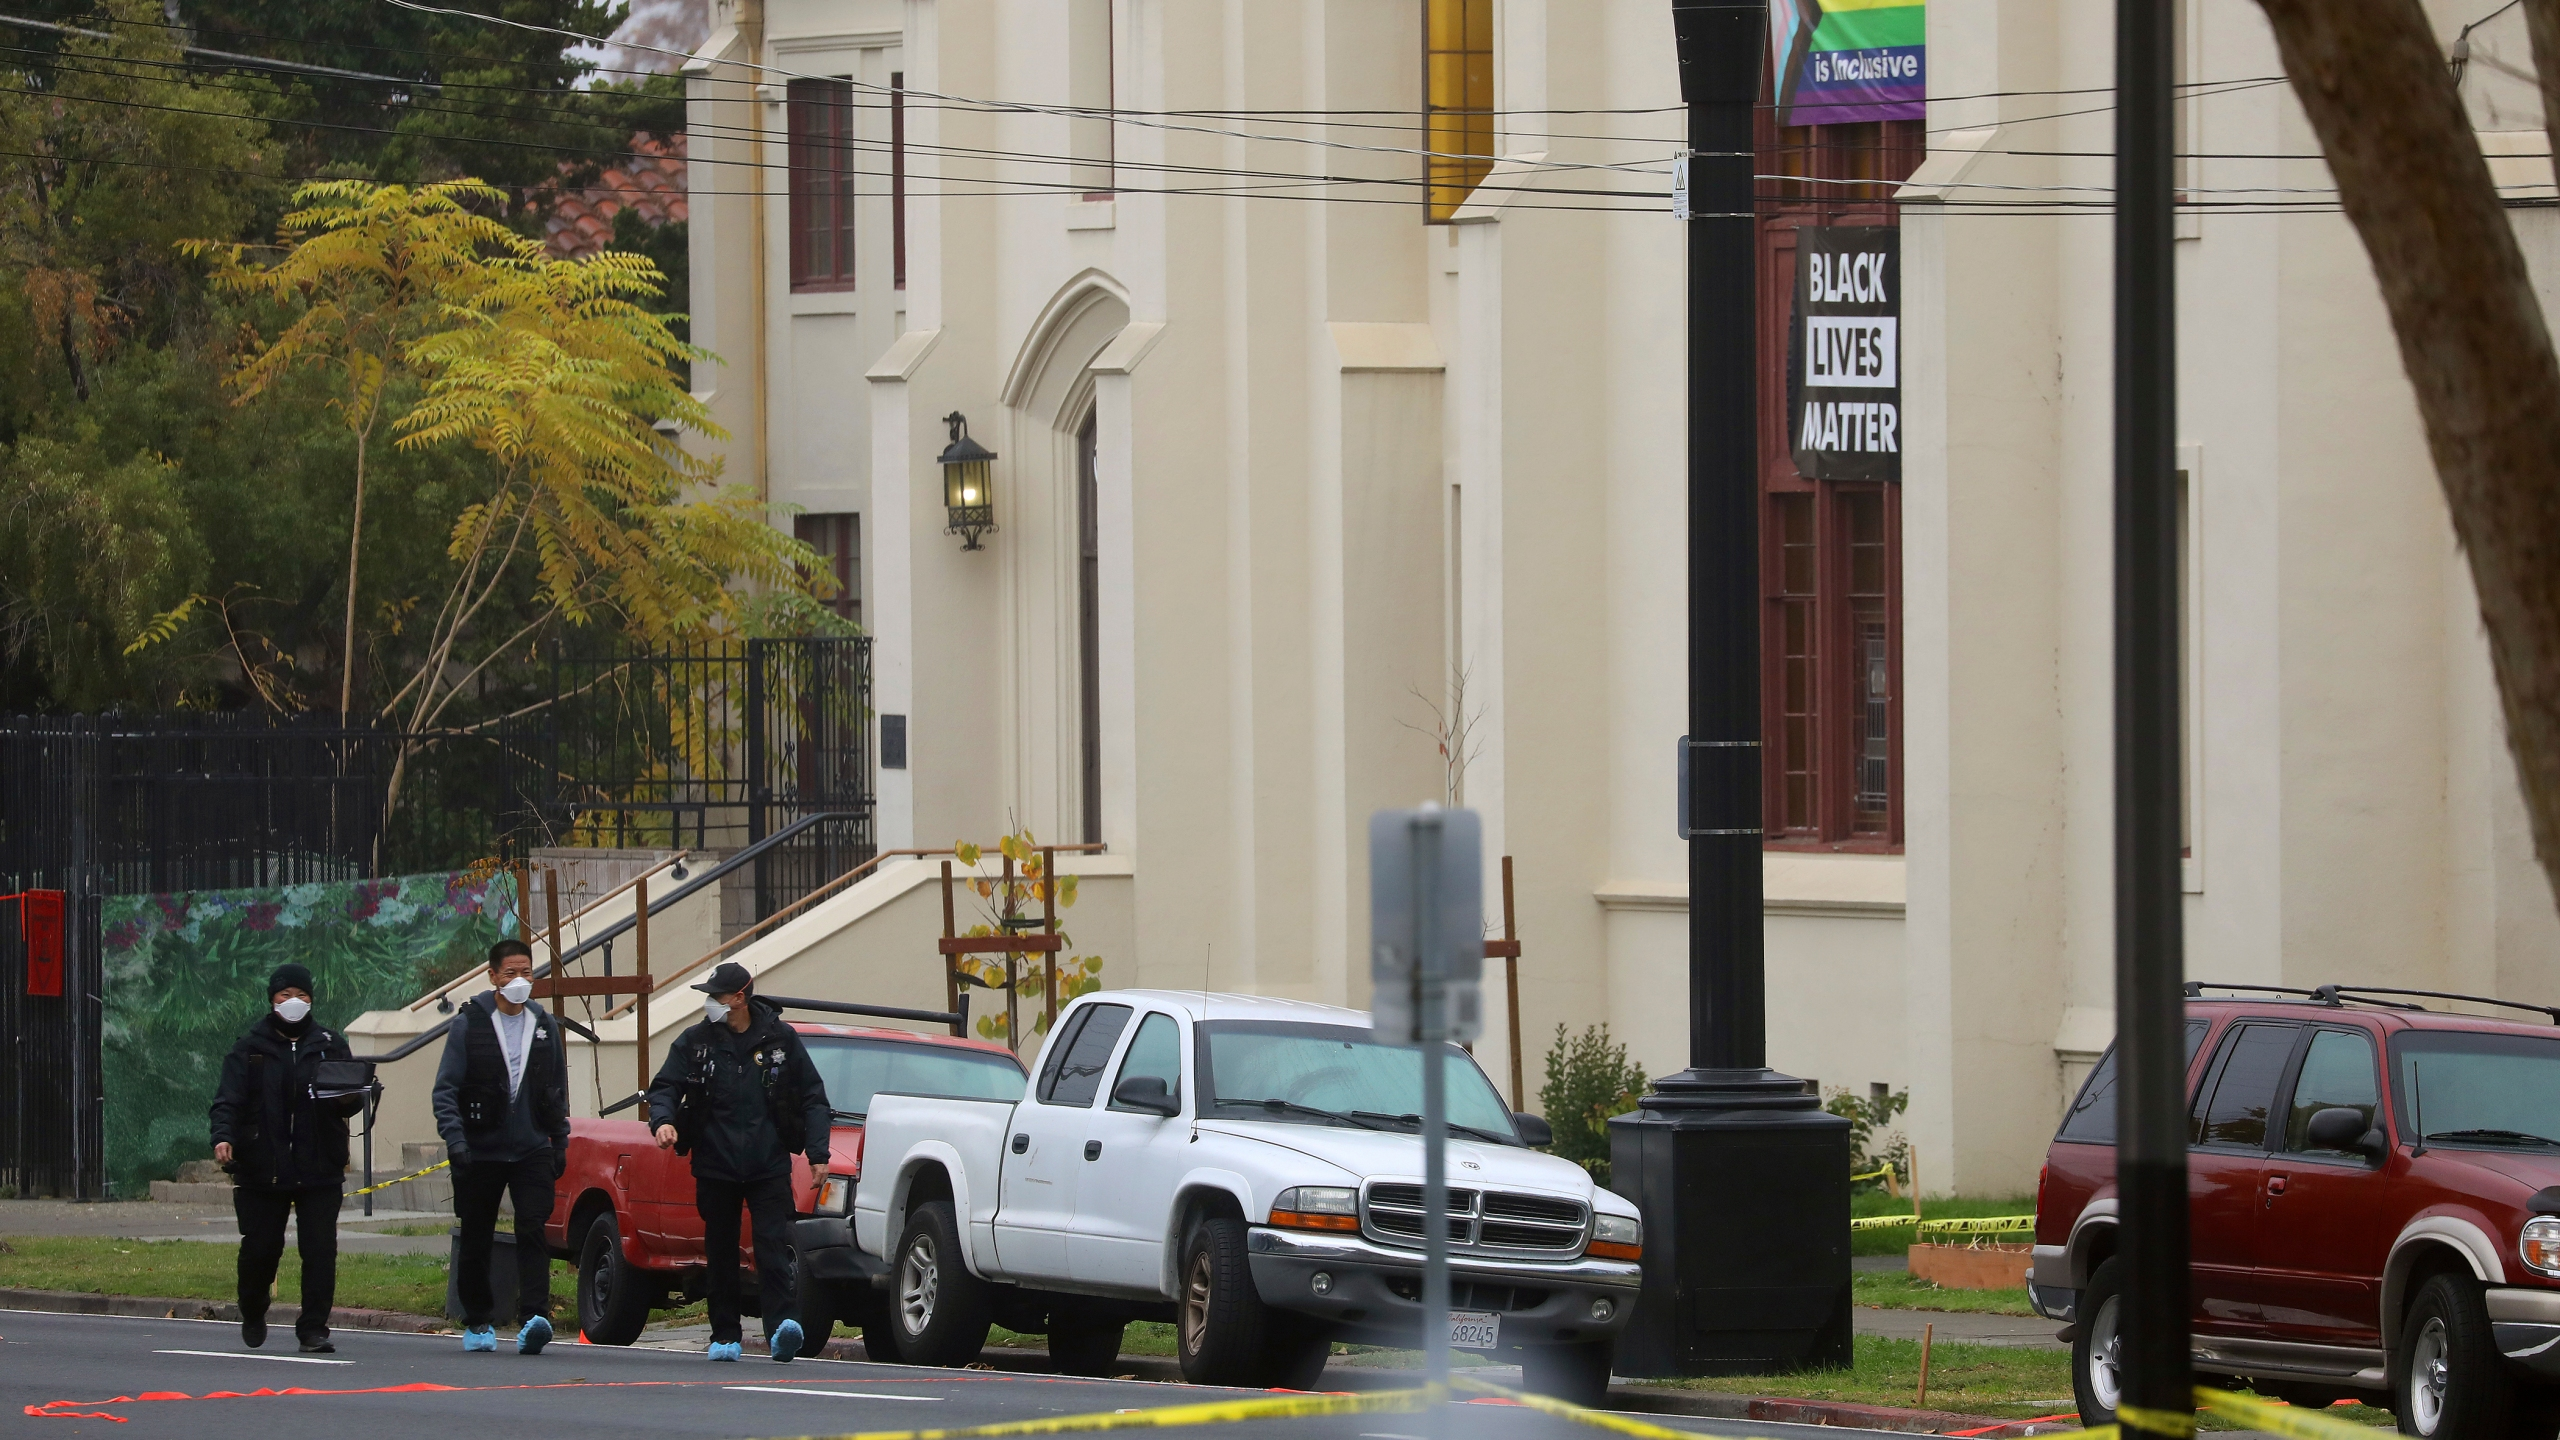 Members of the San Jose Police Department investigate a homicide scene at Grace Baptist Church in San Jose on Nov. 23, 2020. (Aric Crabb / Bay Area News Group via Associated Press)